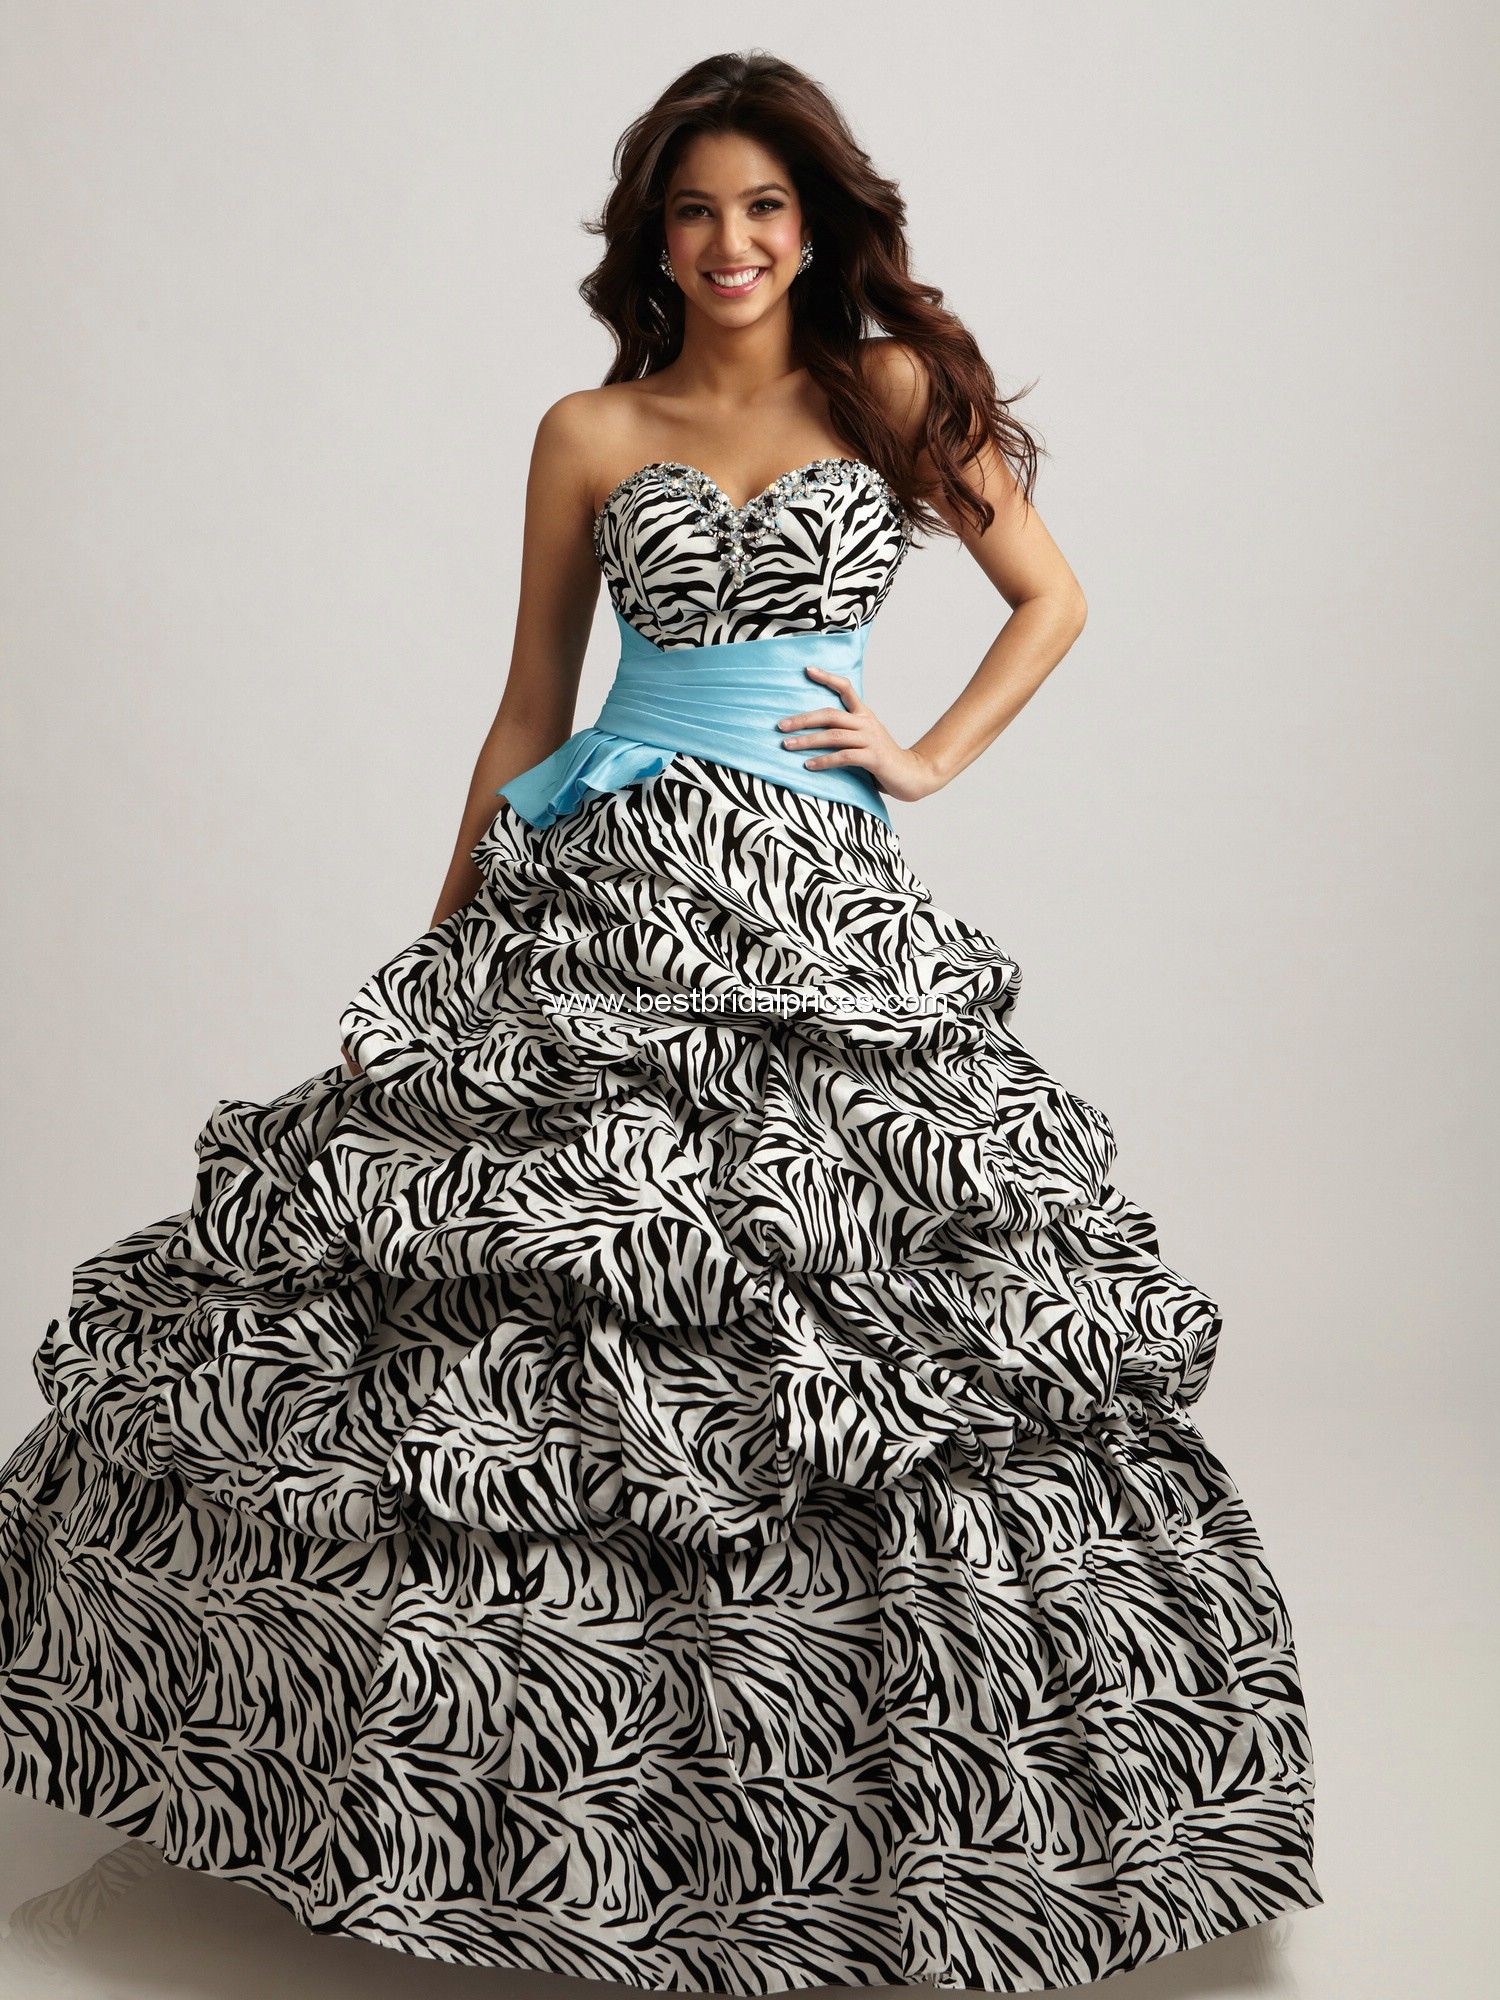 6459eb4c1bb Break up the zebra print with a plain colored ribbon at your waist and complement  this